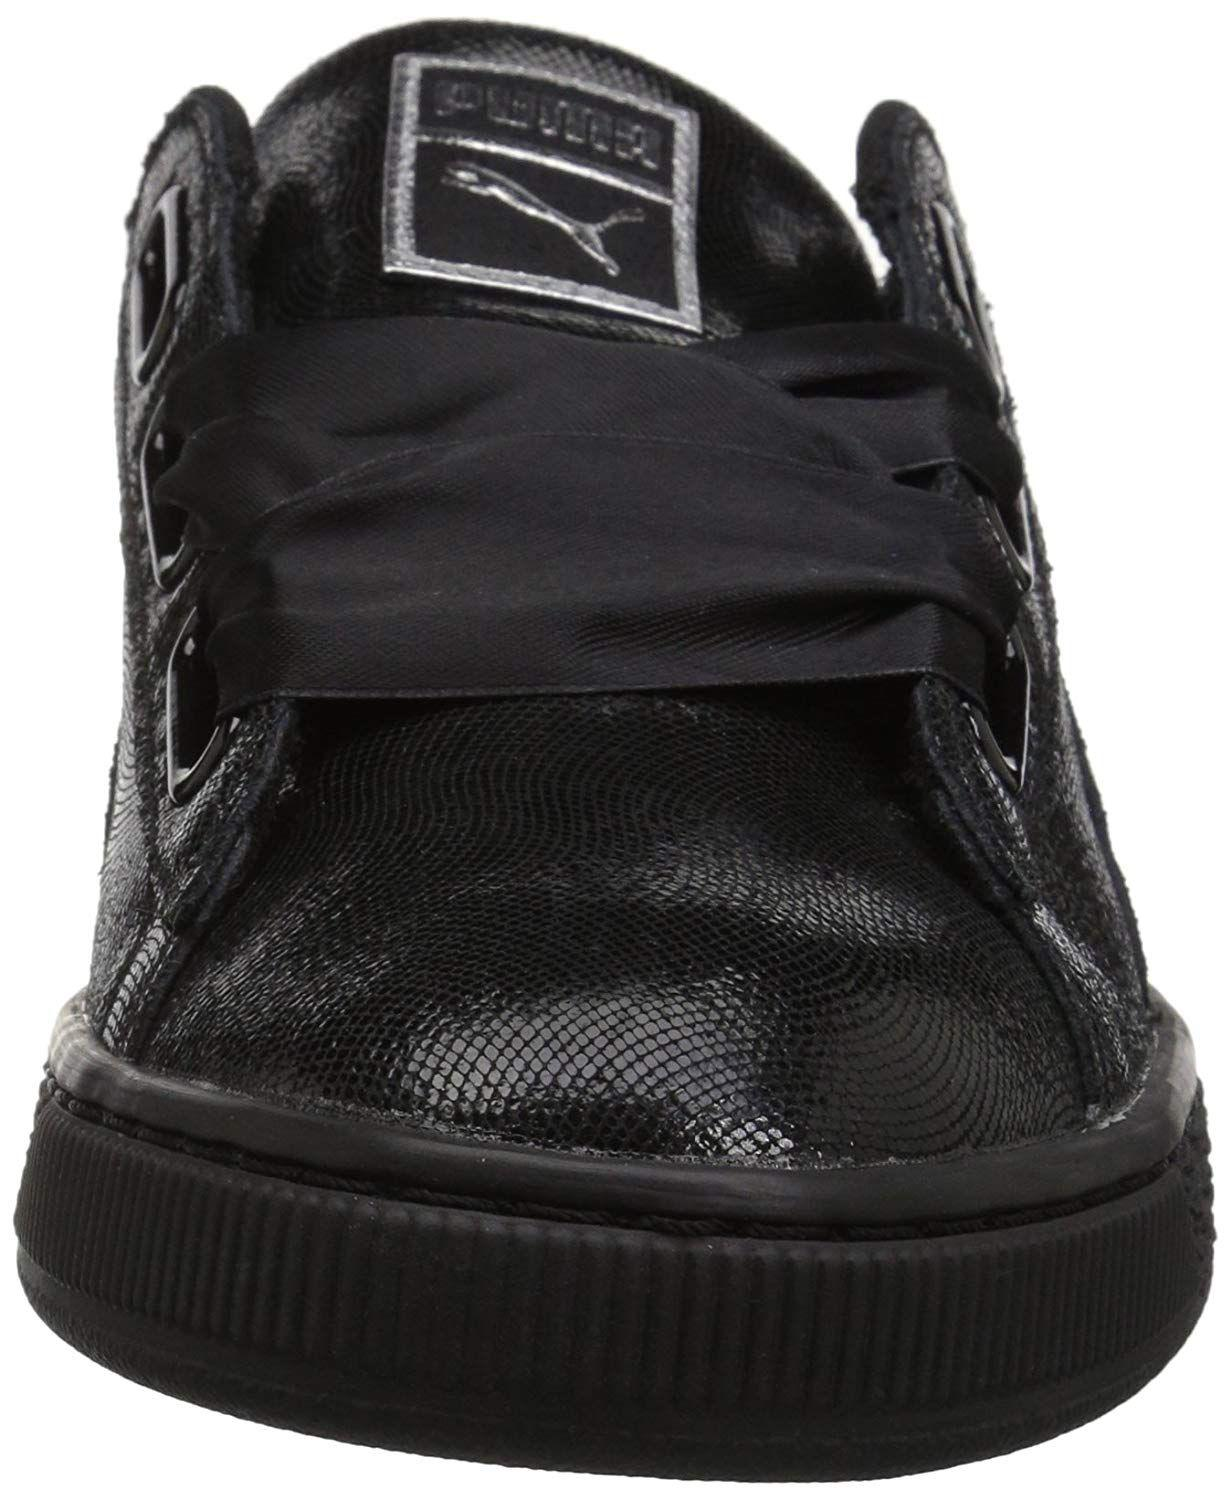 6d848c020313 Lyst - Puma Women s Basket Heart Ns Wn Sneaker in Black